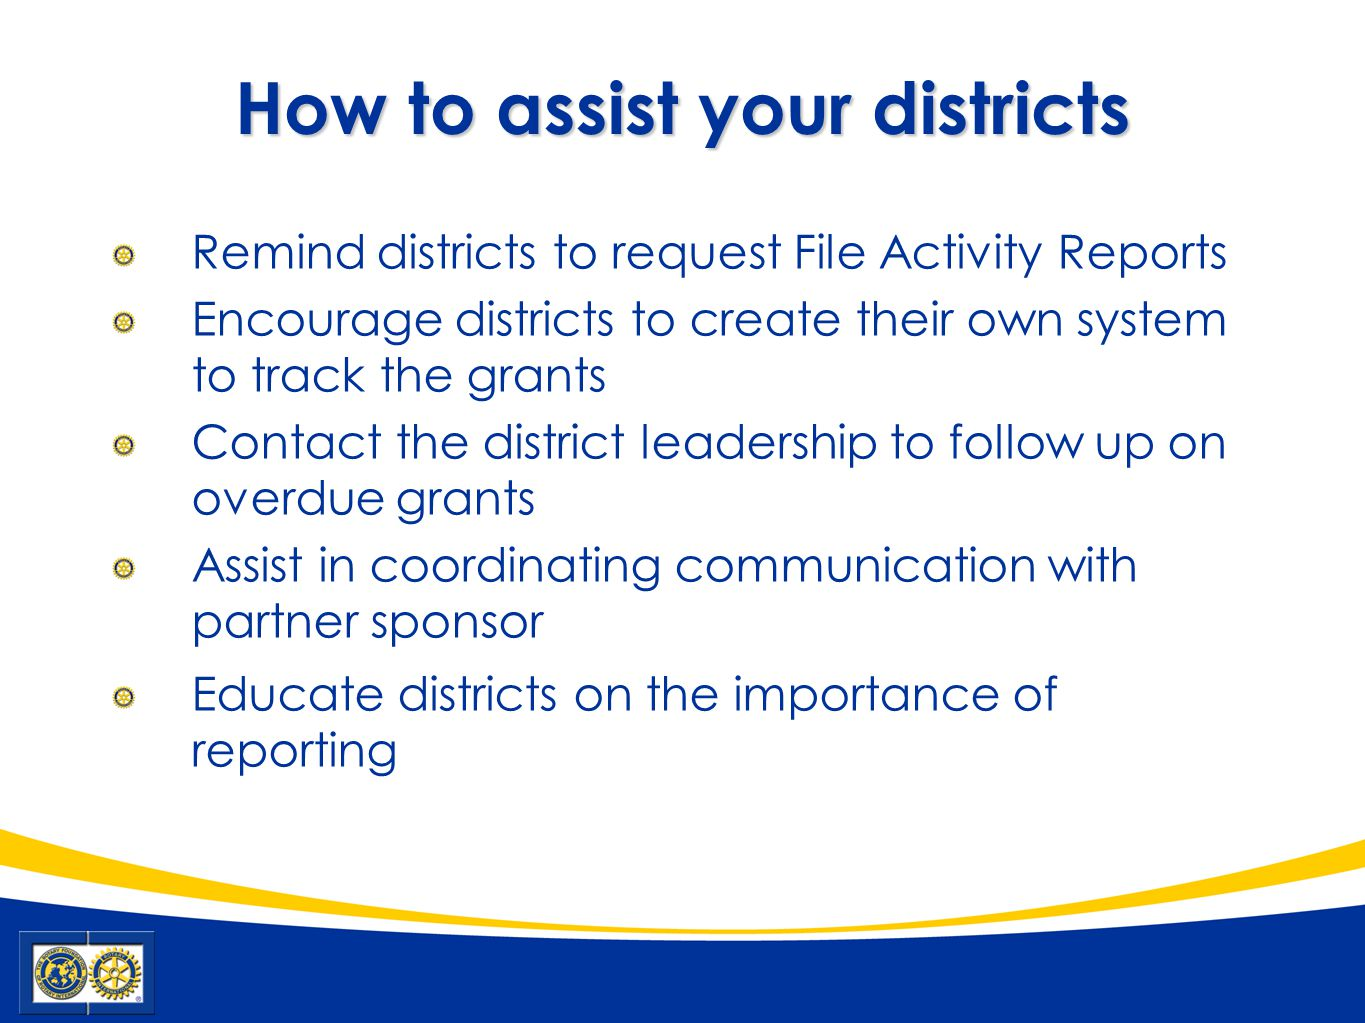 How to assist your districts Remind districts to request File Activity Reports Encourage districts to create their own system to track the grants Contact the district leadership to follow up on overdue grants Assist in coordinating communication with partner sponsor Educate districts on the importance of reporting